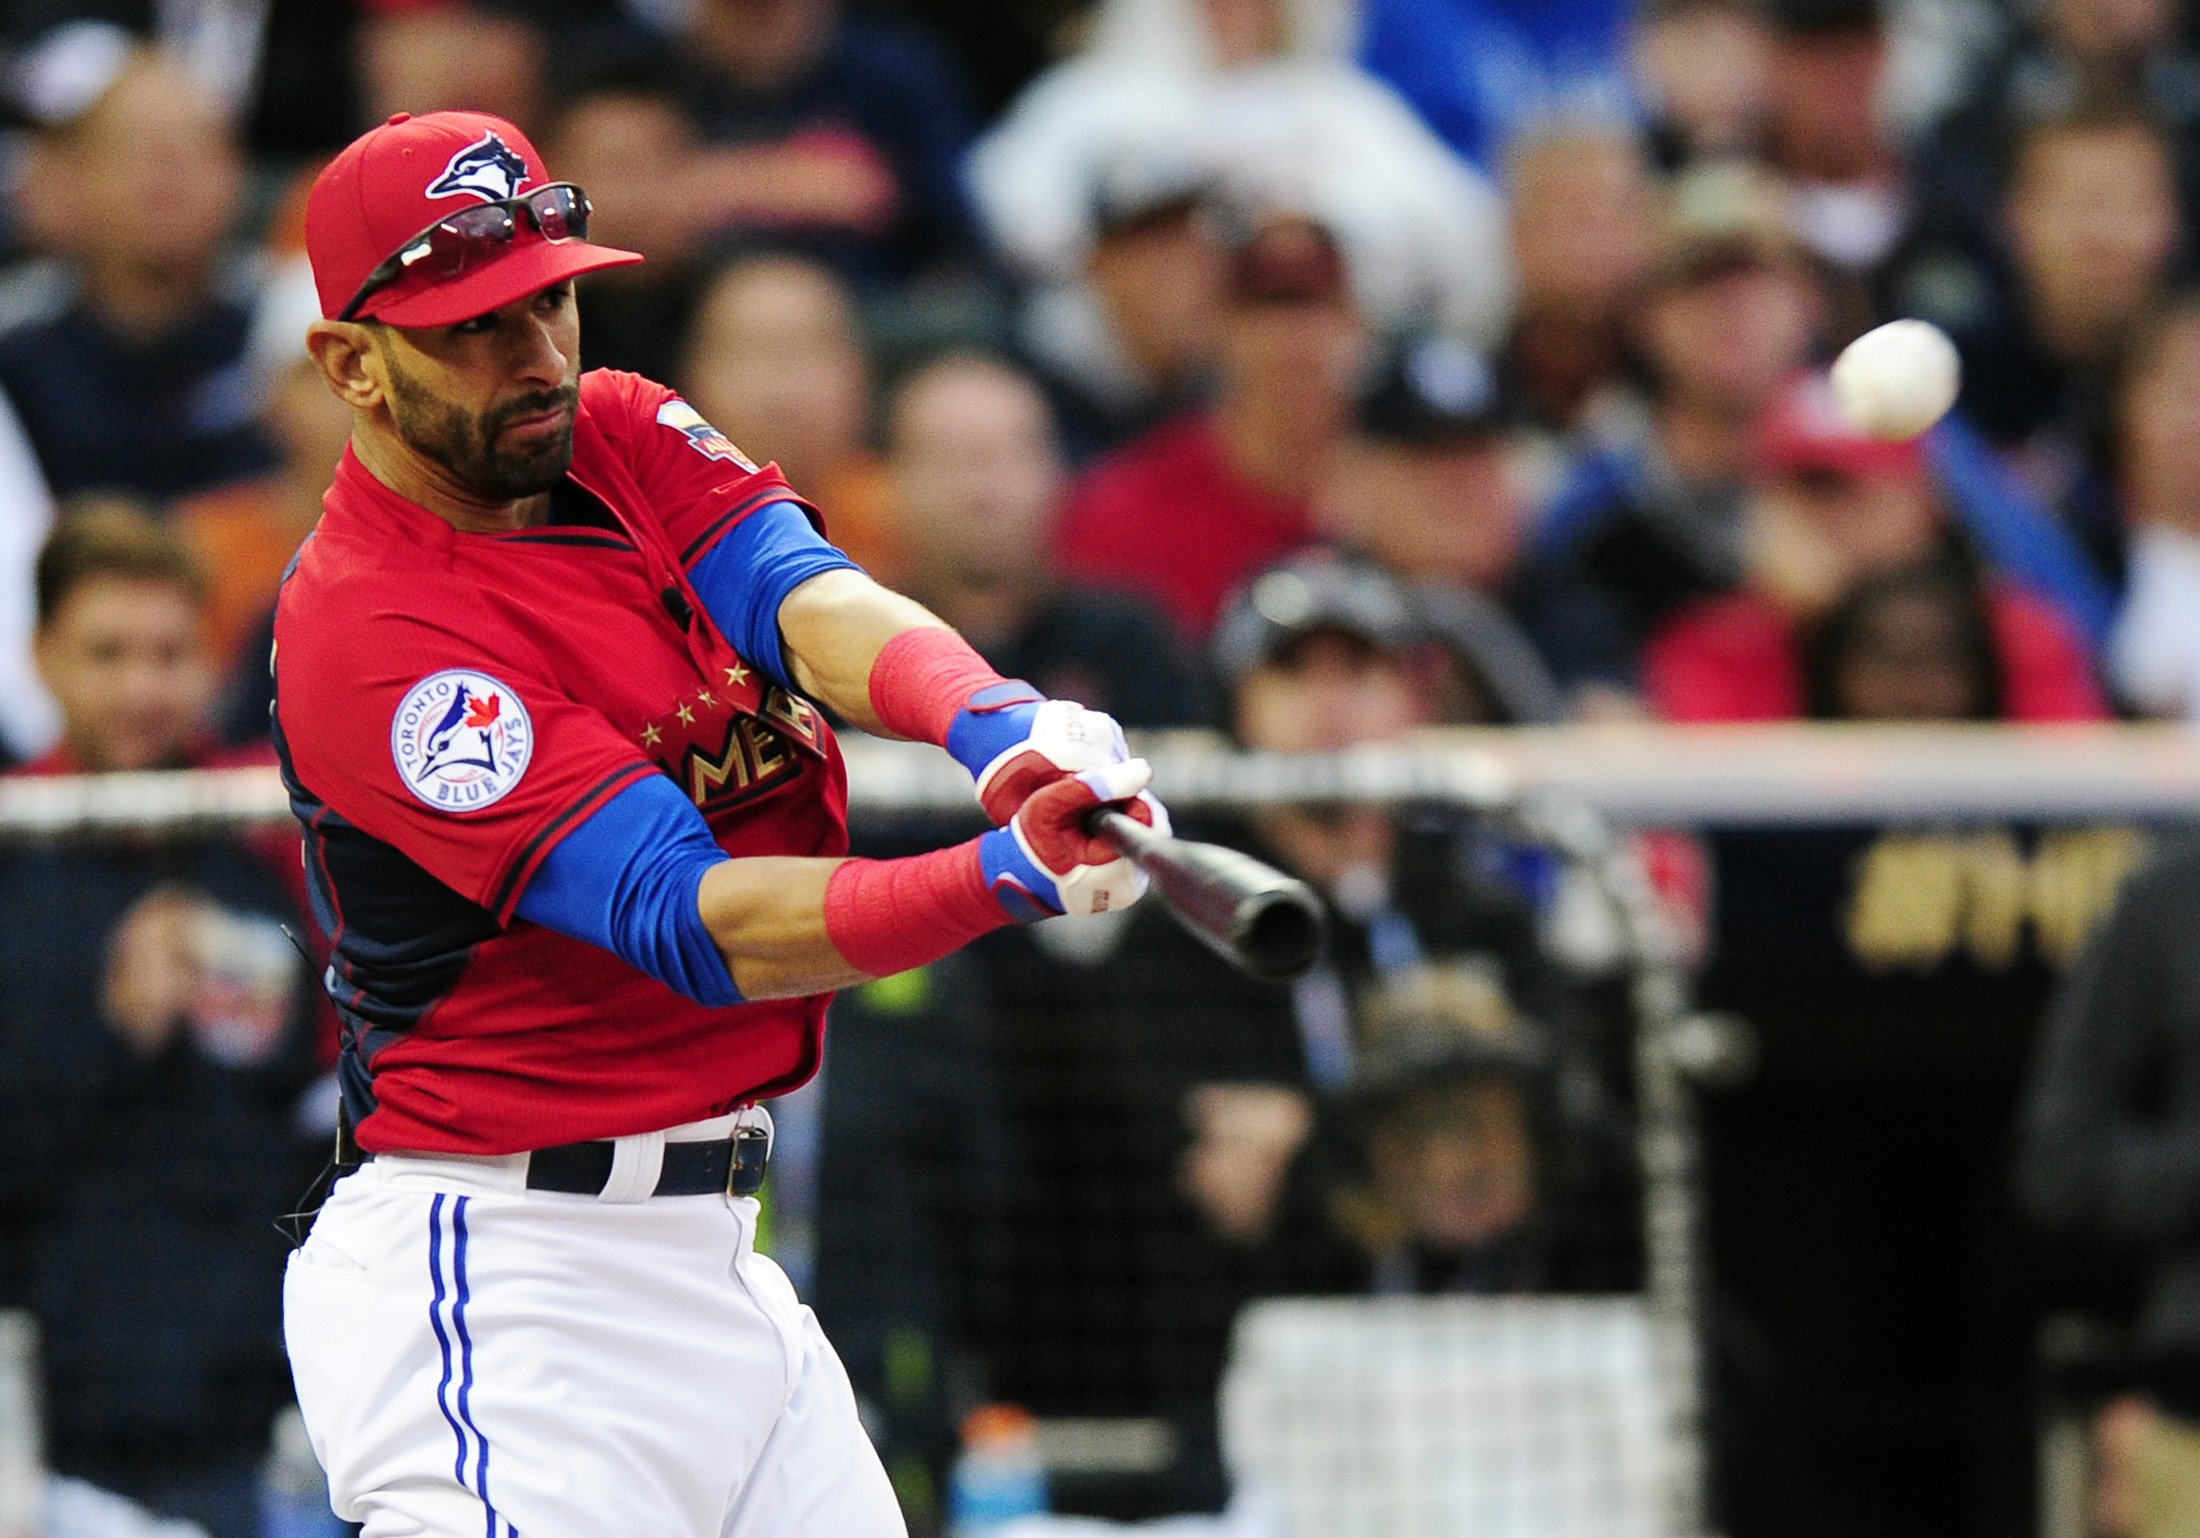 Jose Bautista put on an impressive power display in the first round, belting 10 home runs.